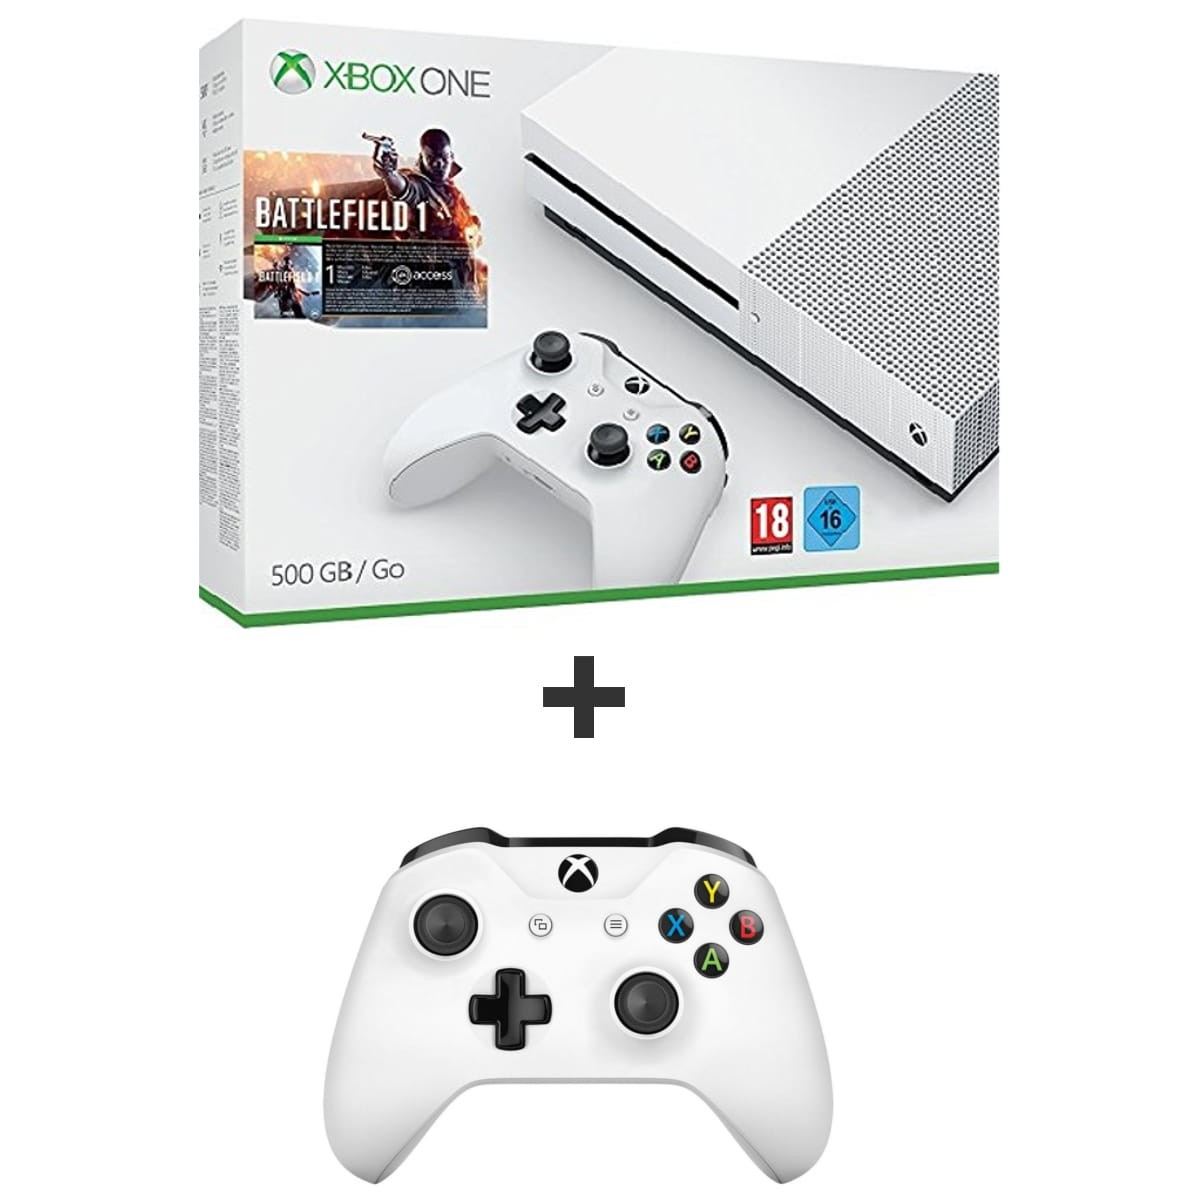 bon plan console xbox one s pas cher avec battlefield 1. Black Bedroom Furniture Sets. Home Design Ideas